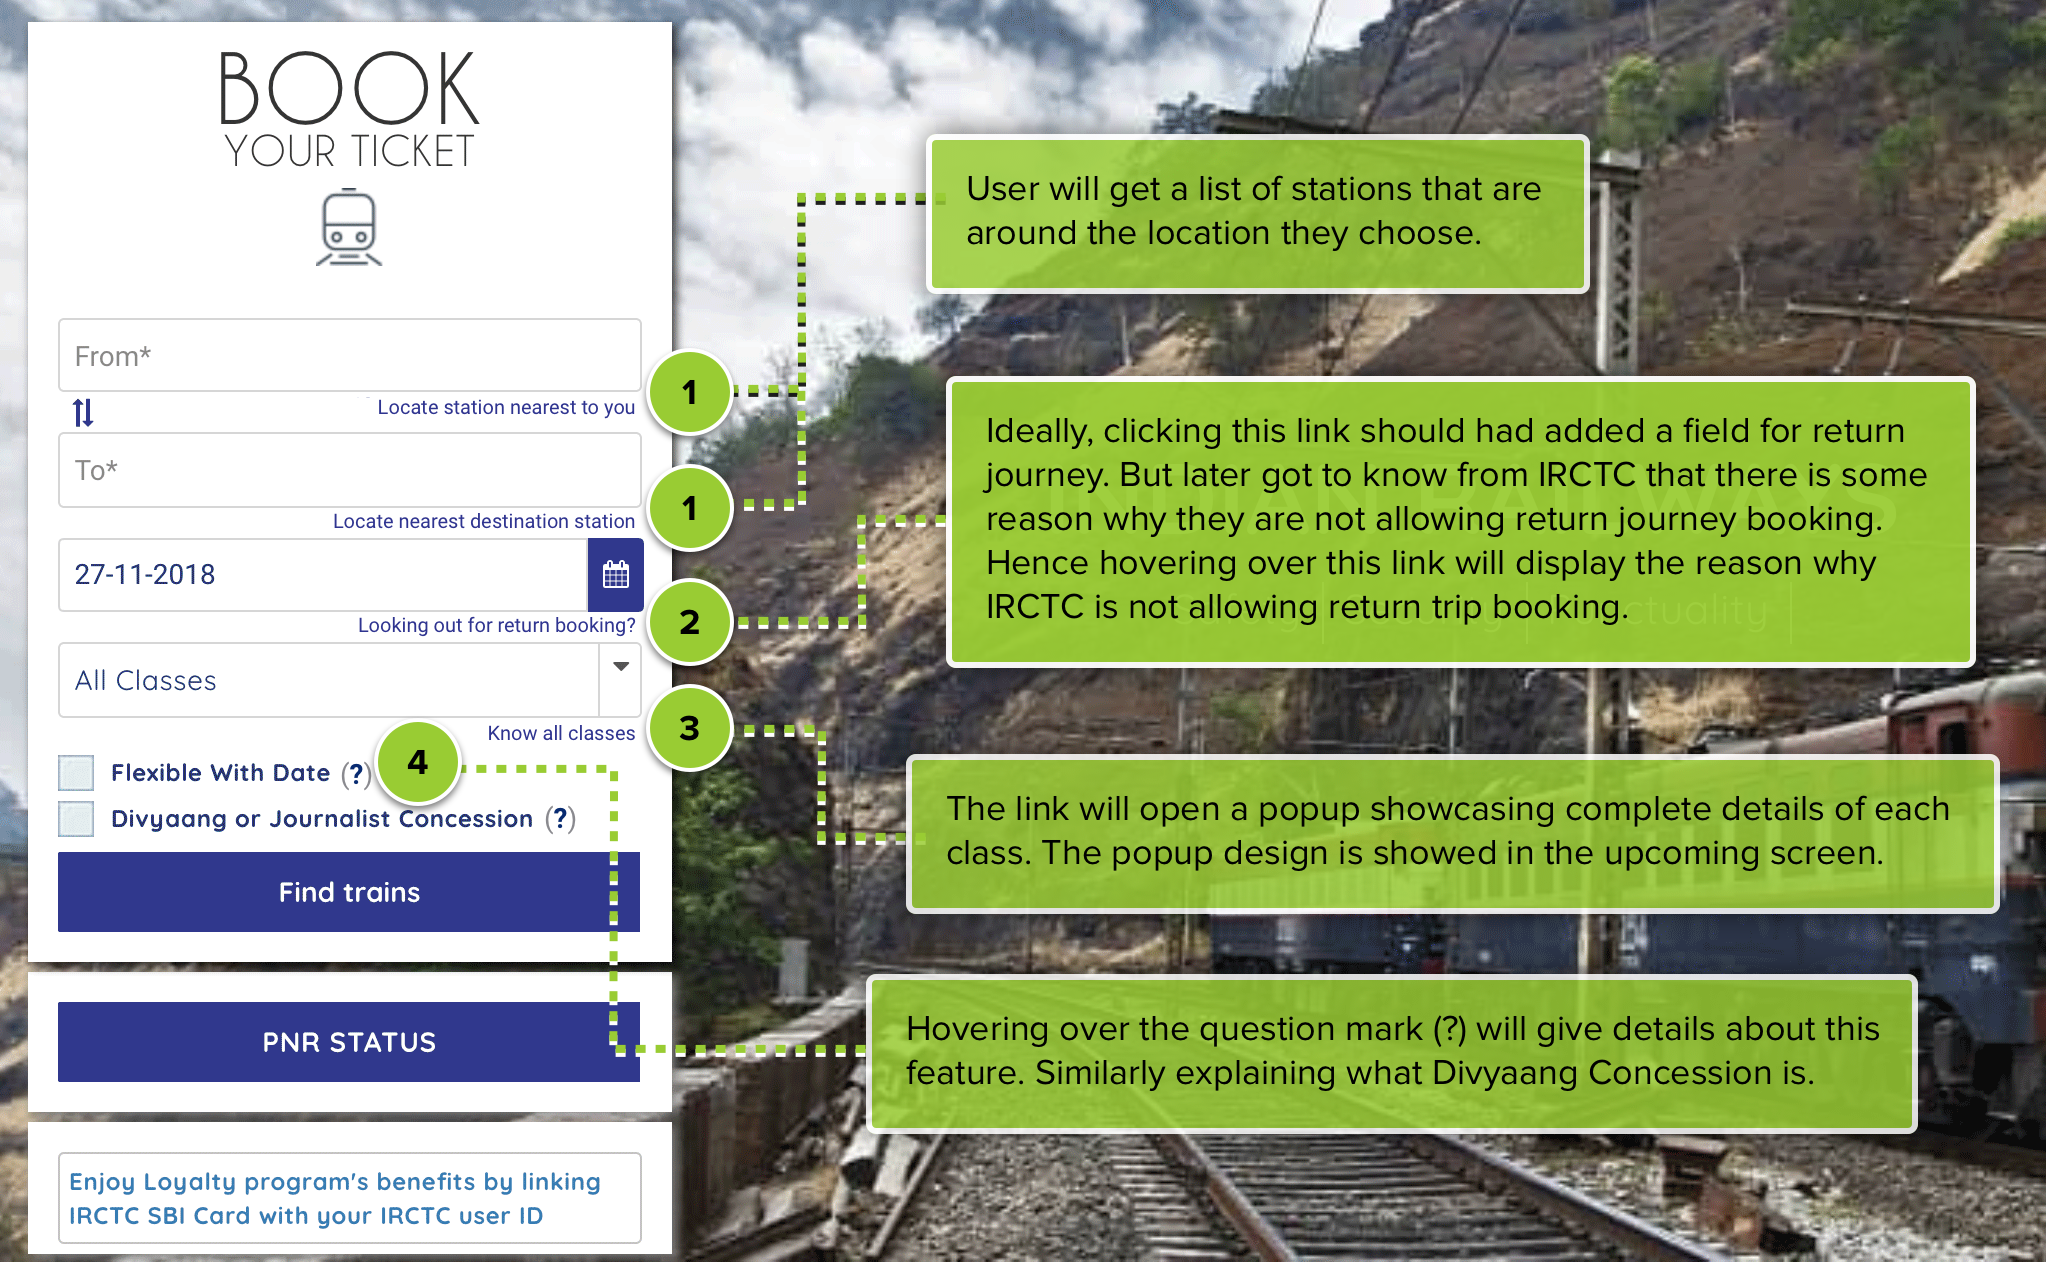 UX audit of IRCTC booking flow presented to the IRCTC team